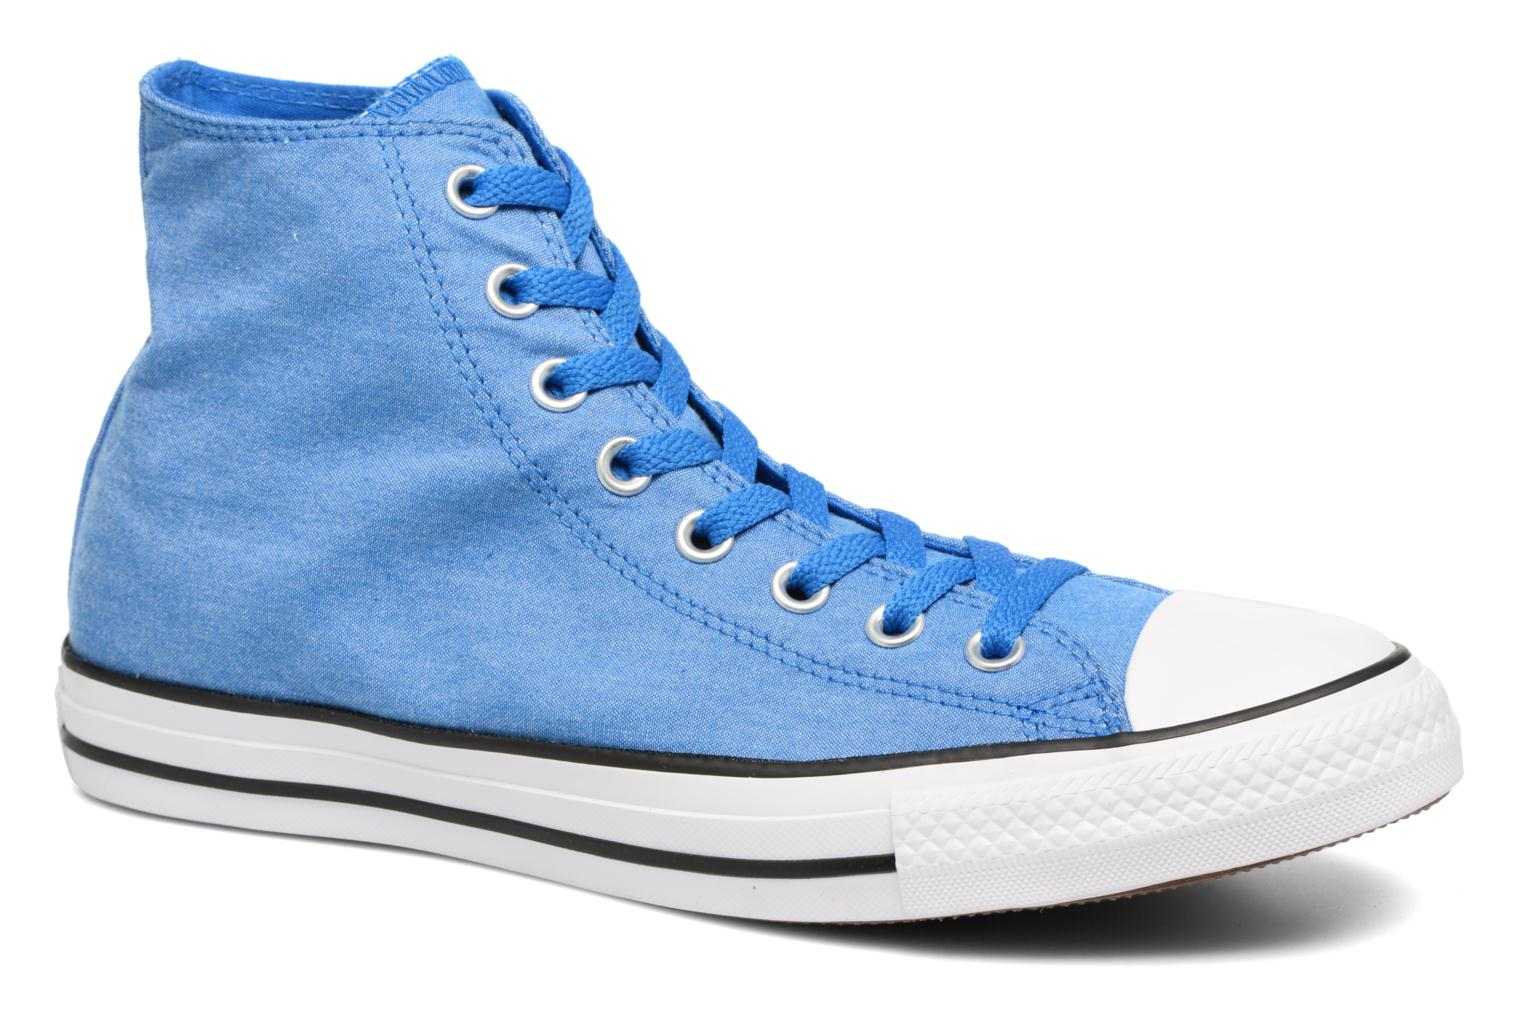 Chuck Taylor All Star Hi Chambray Soar/White/Black